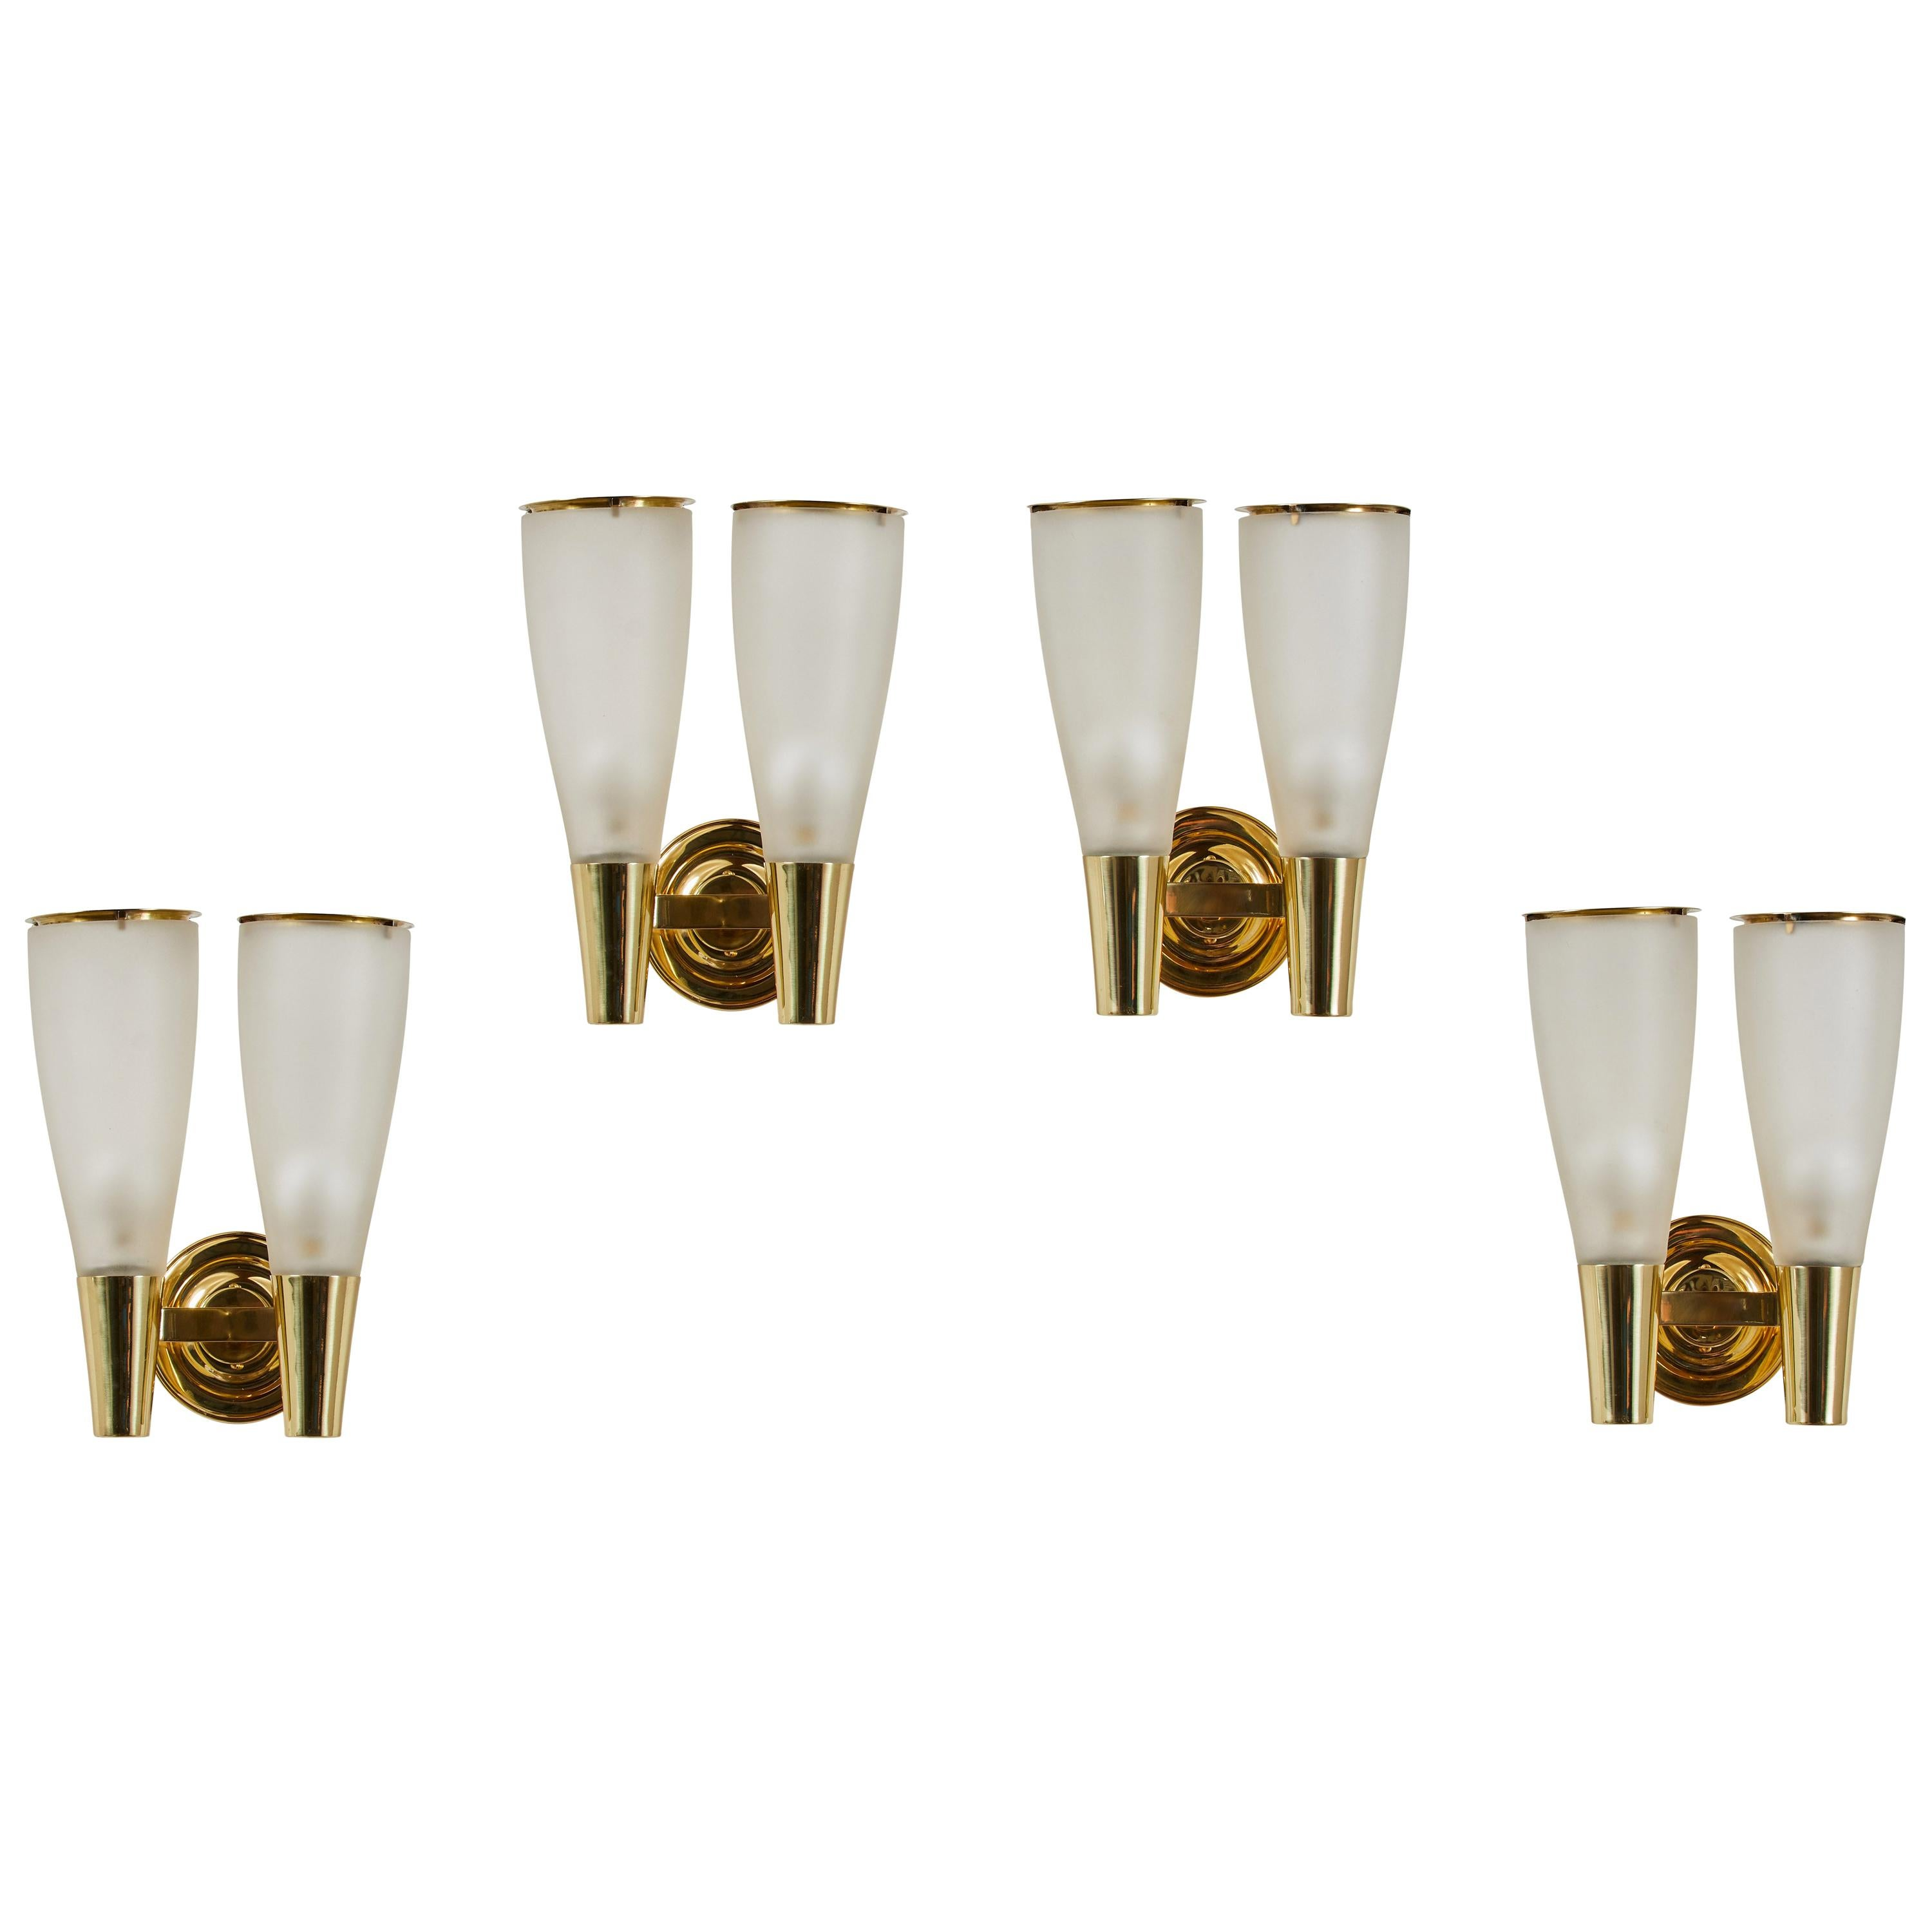 Two Pairs of Sconces by Pietro Chiesa for Fontana Arte